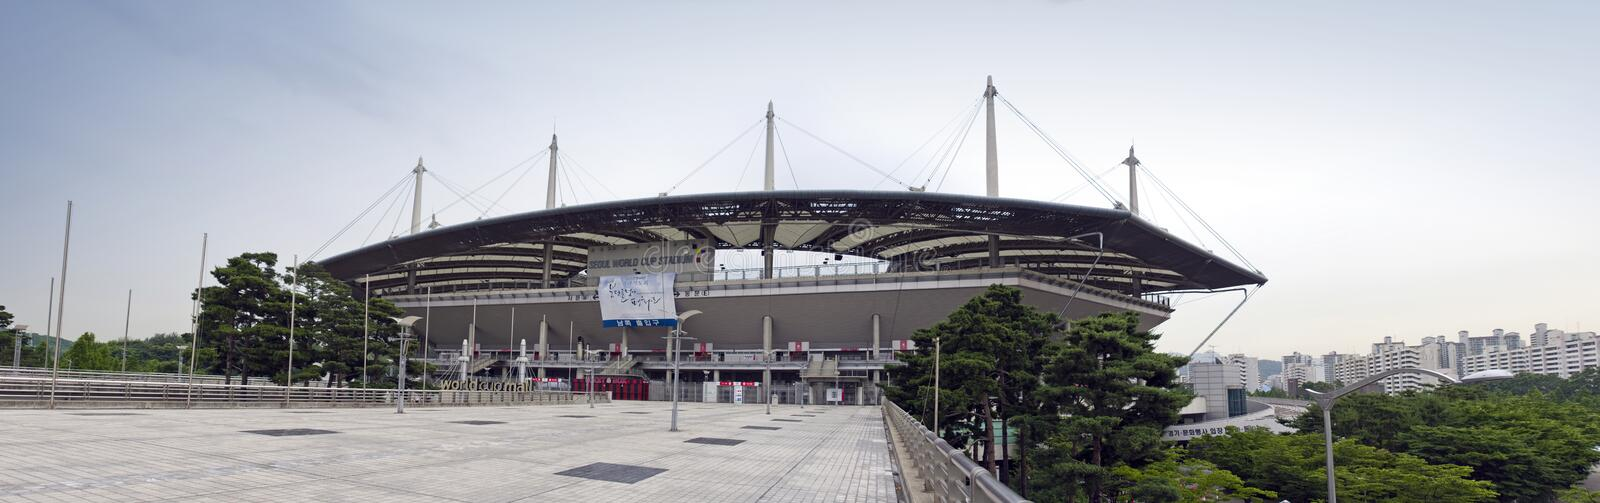 Download Olympic stadium in Seoul editorial stock photo. Image of seoul - 15281423